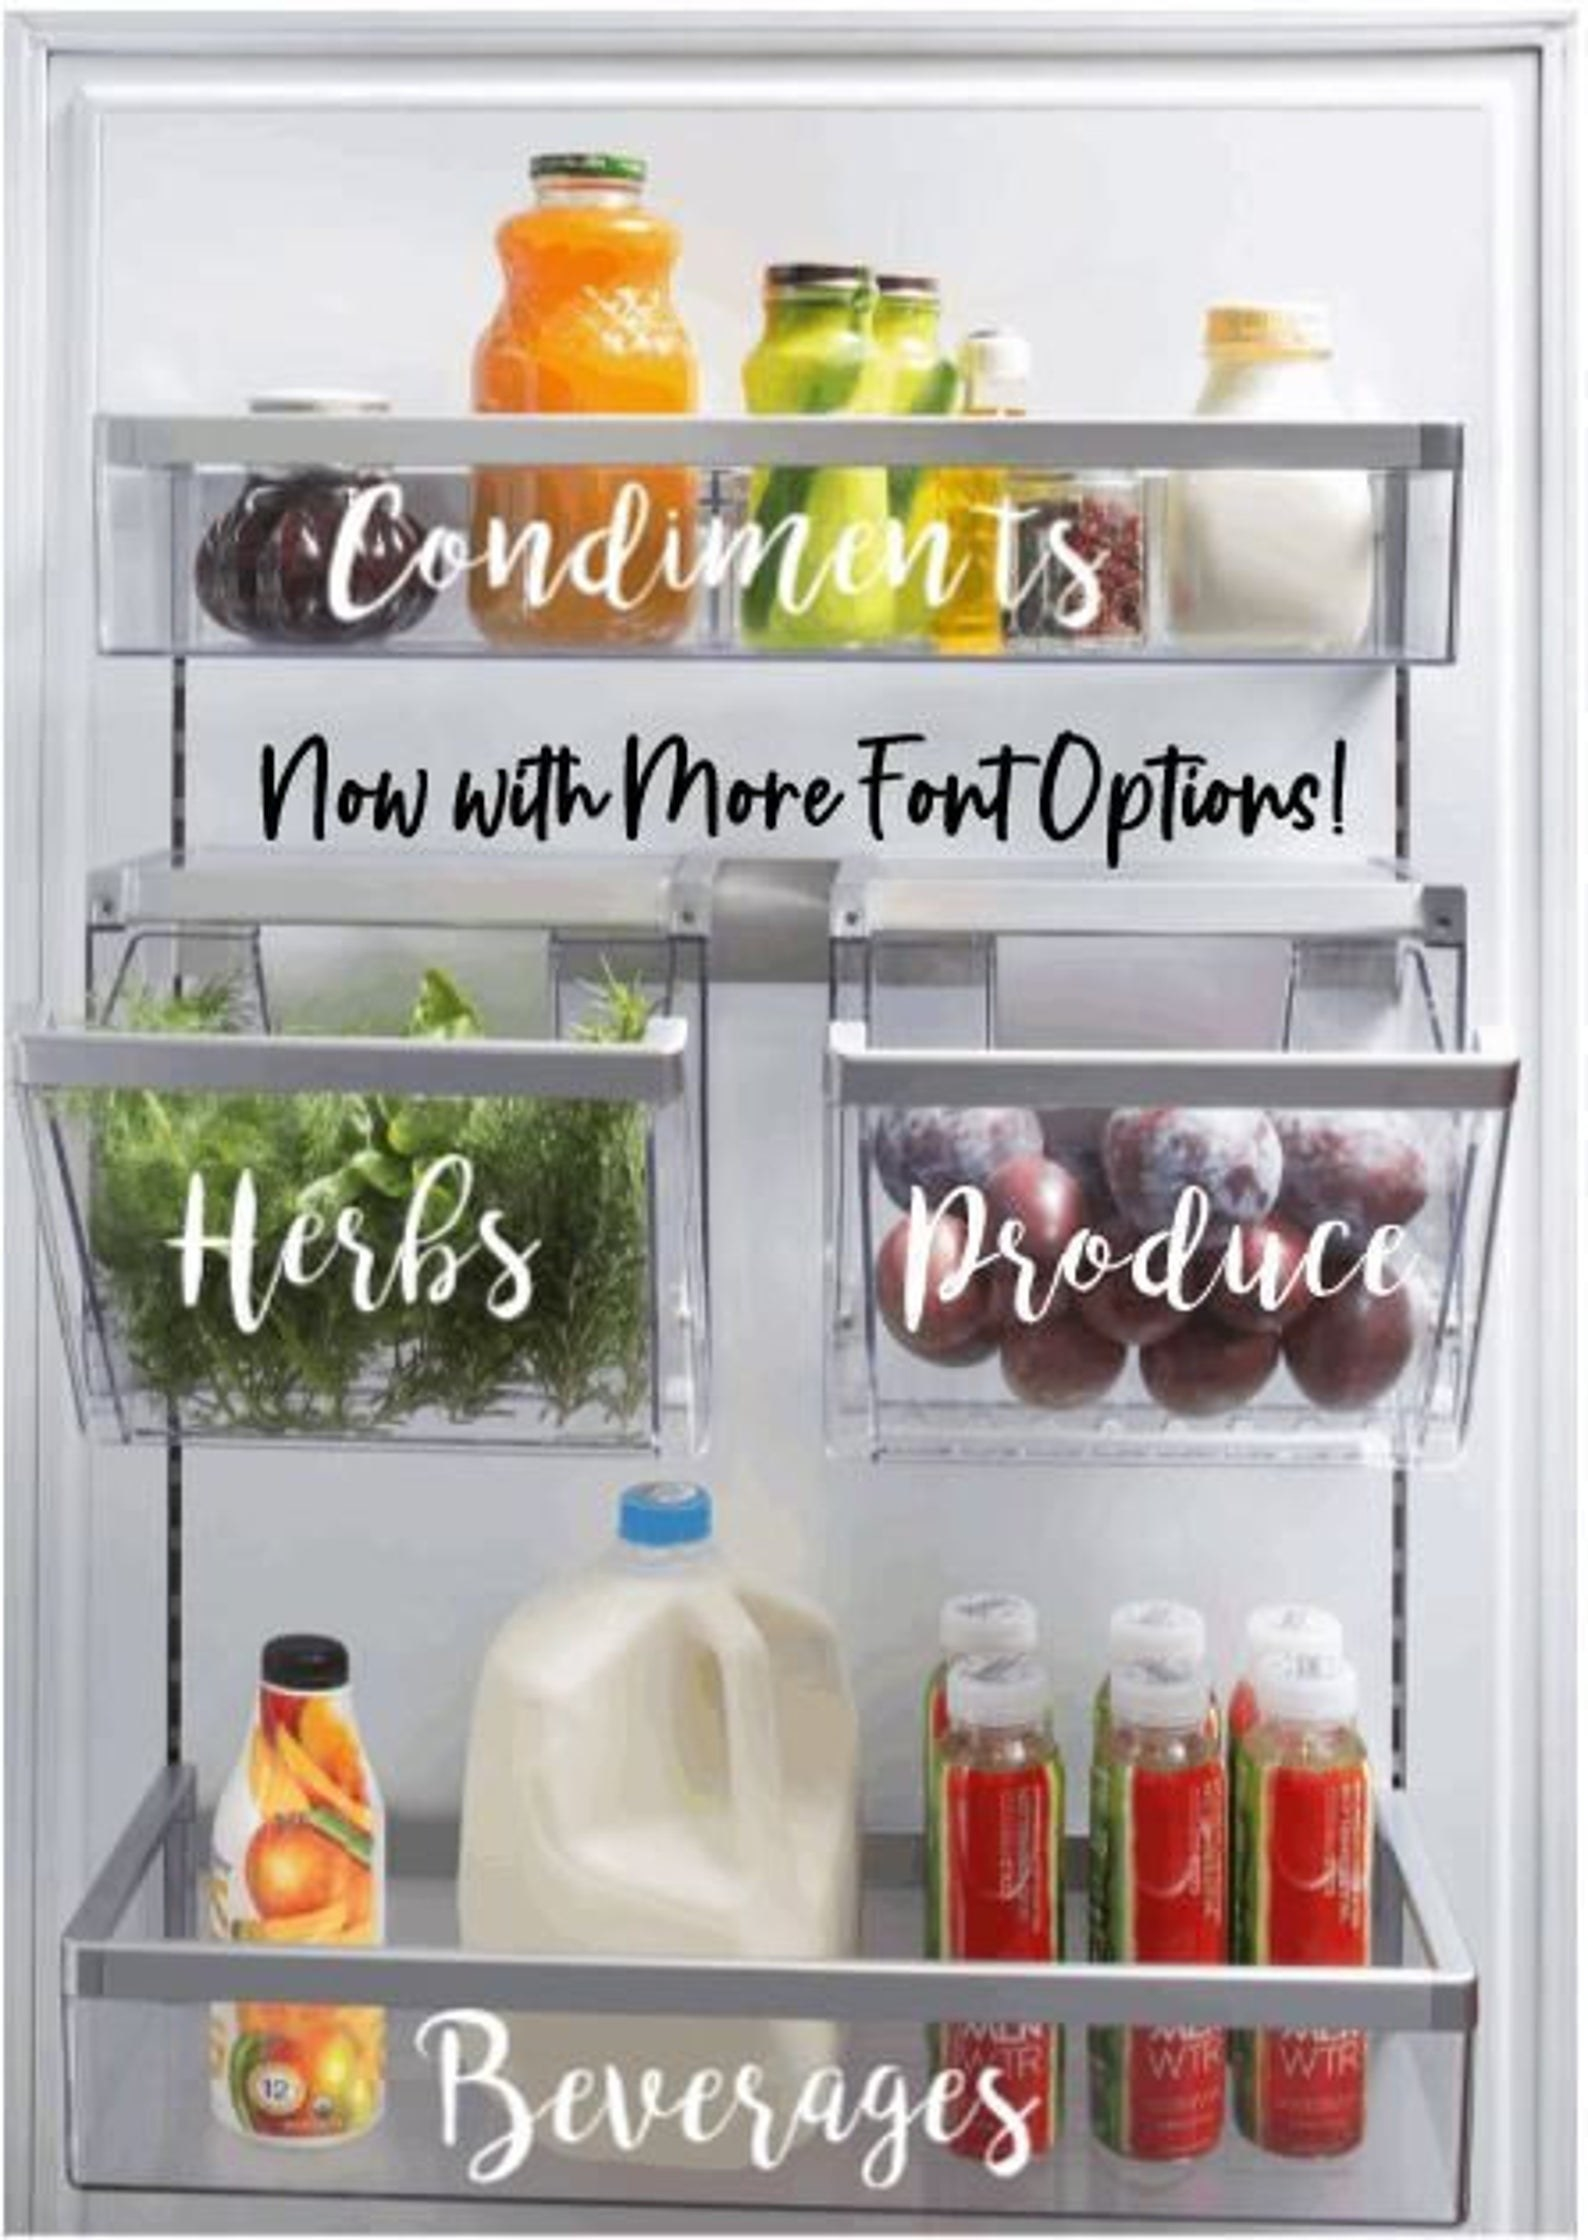 Various labels placed on shelves in fridge